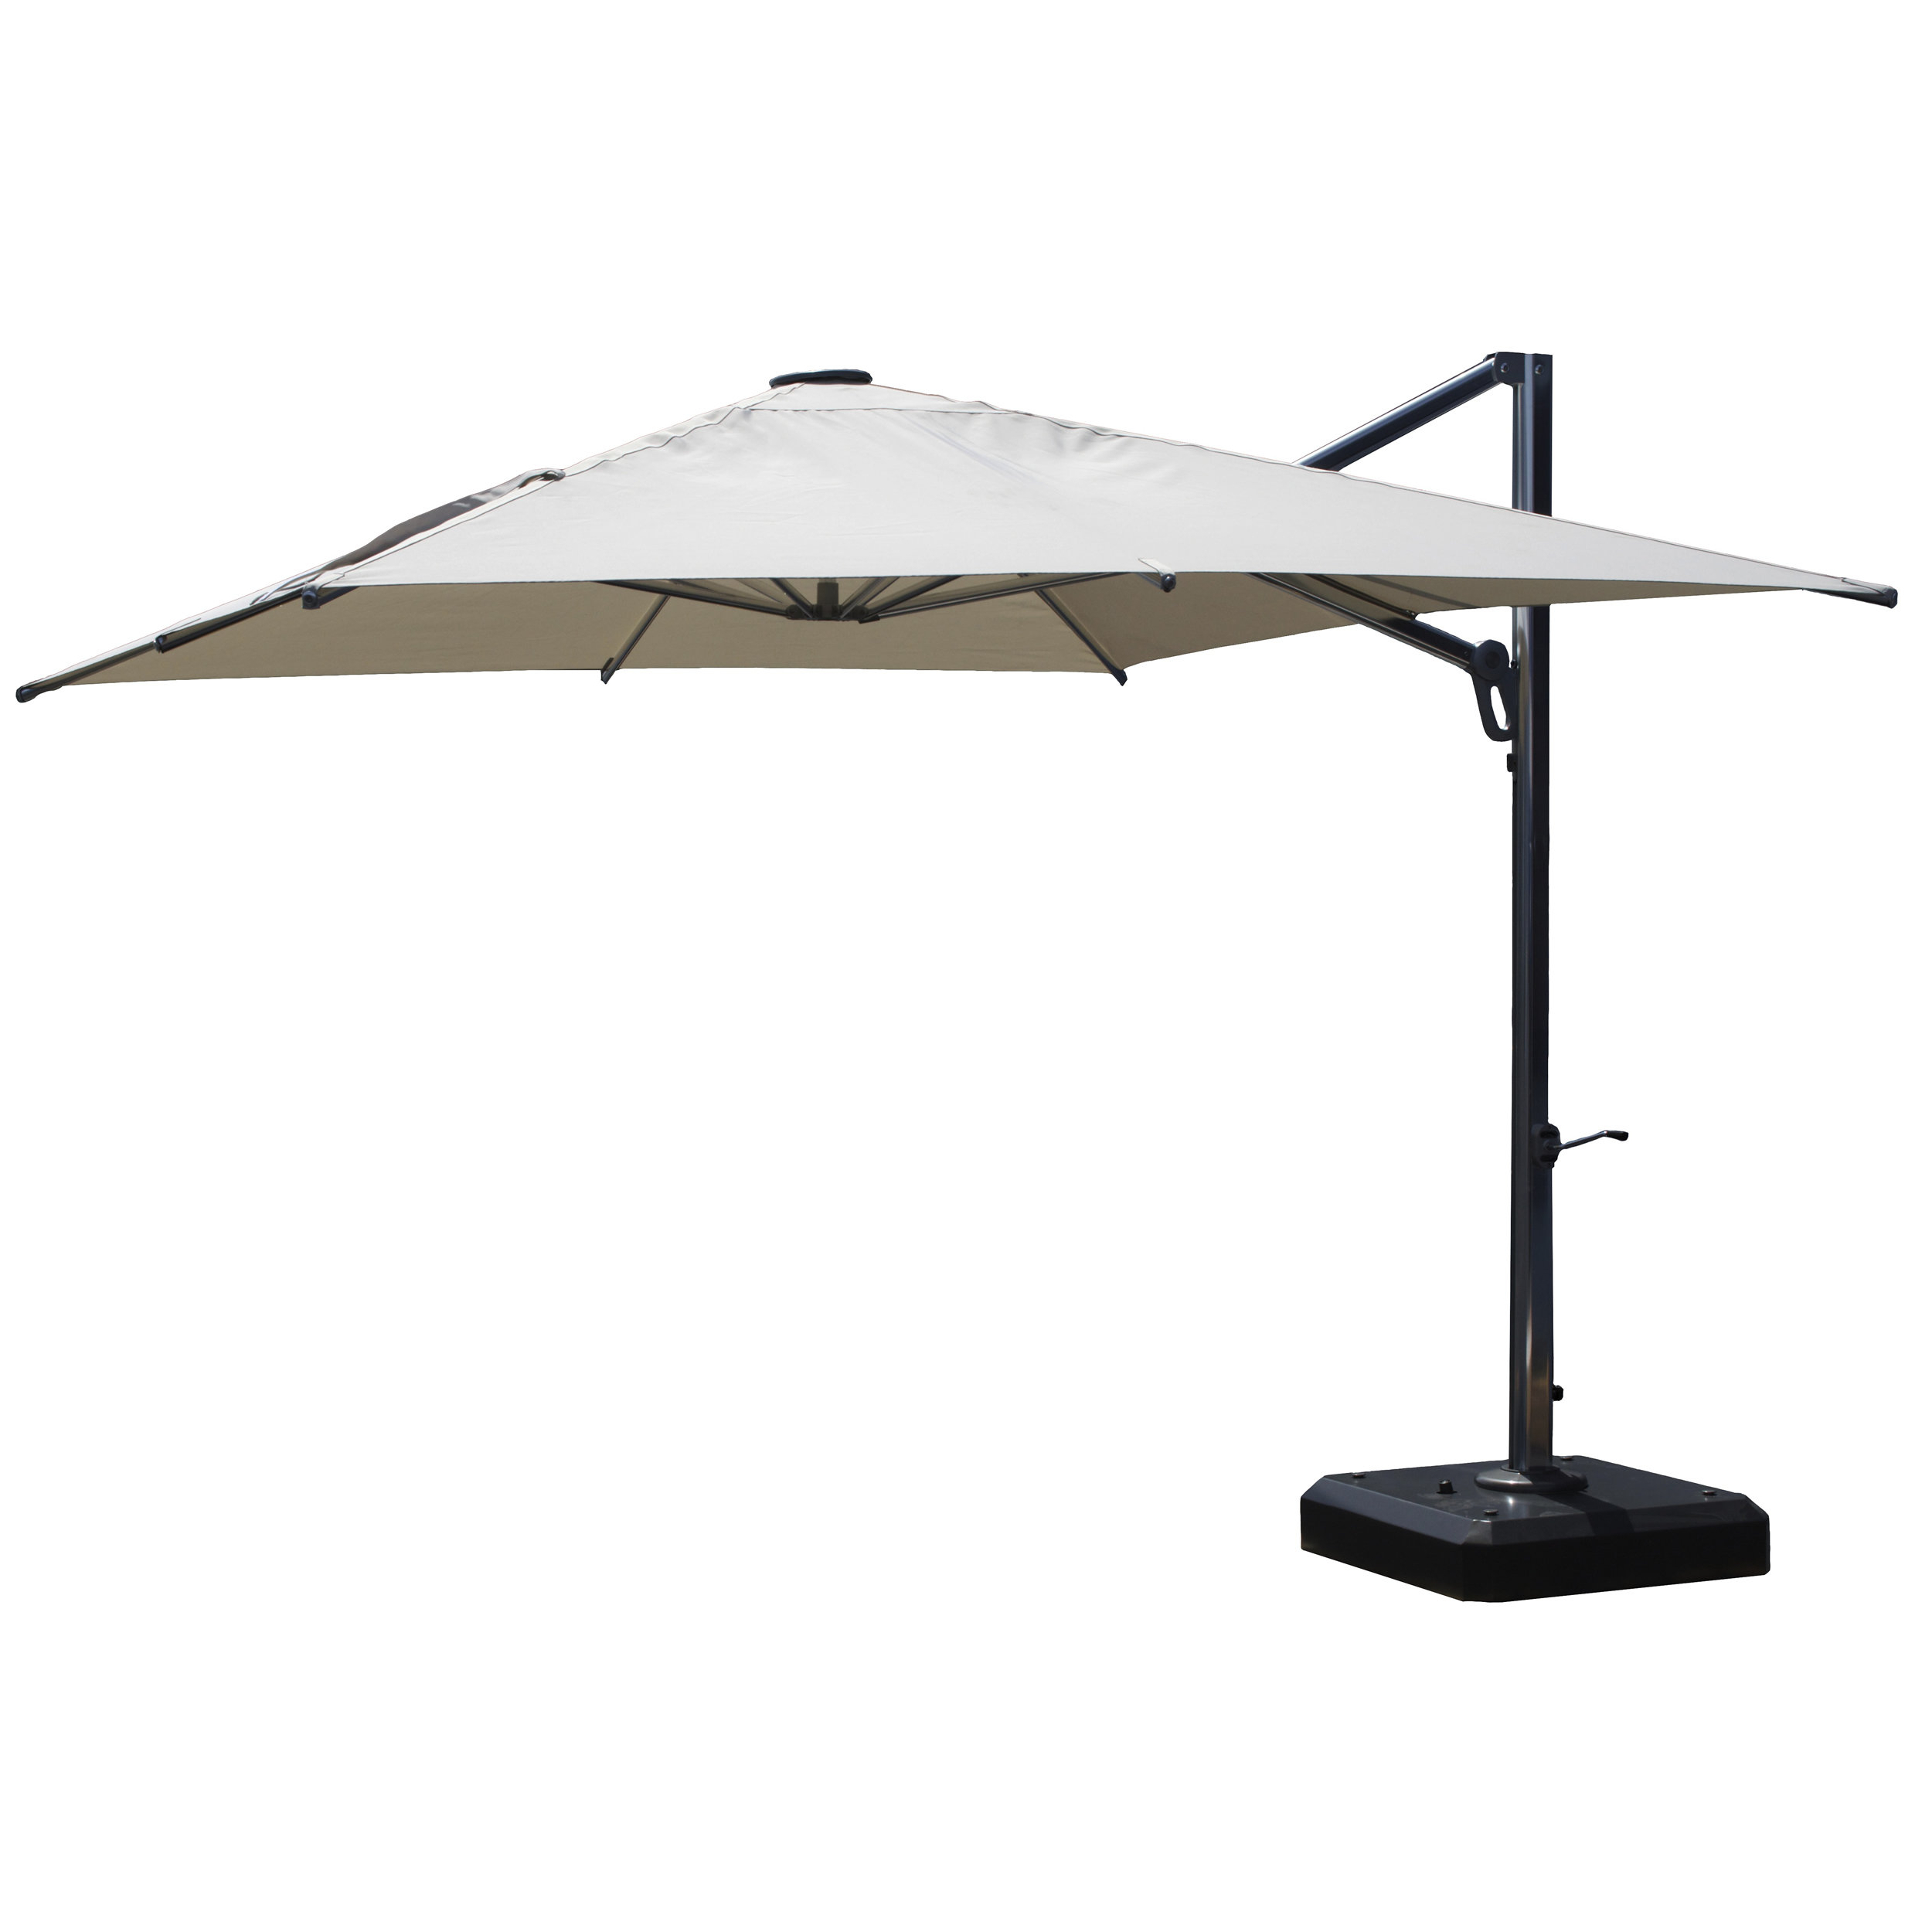 10' Square Cantilever Umbrella For Recent Ceylon Cantilever Sunbrella Umbrellas (View 13 of 20)